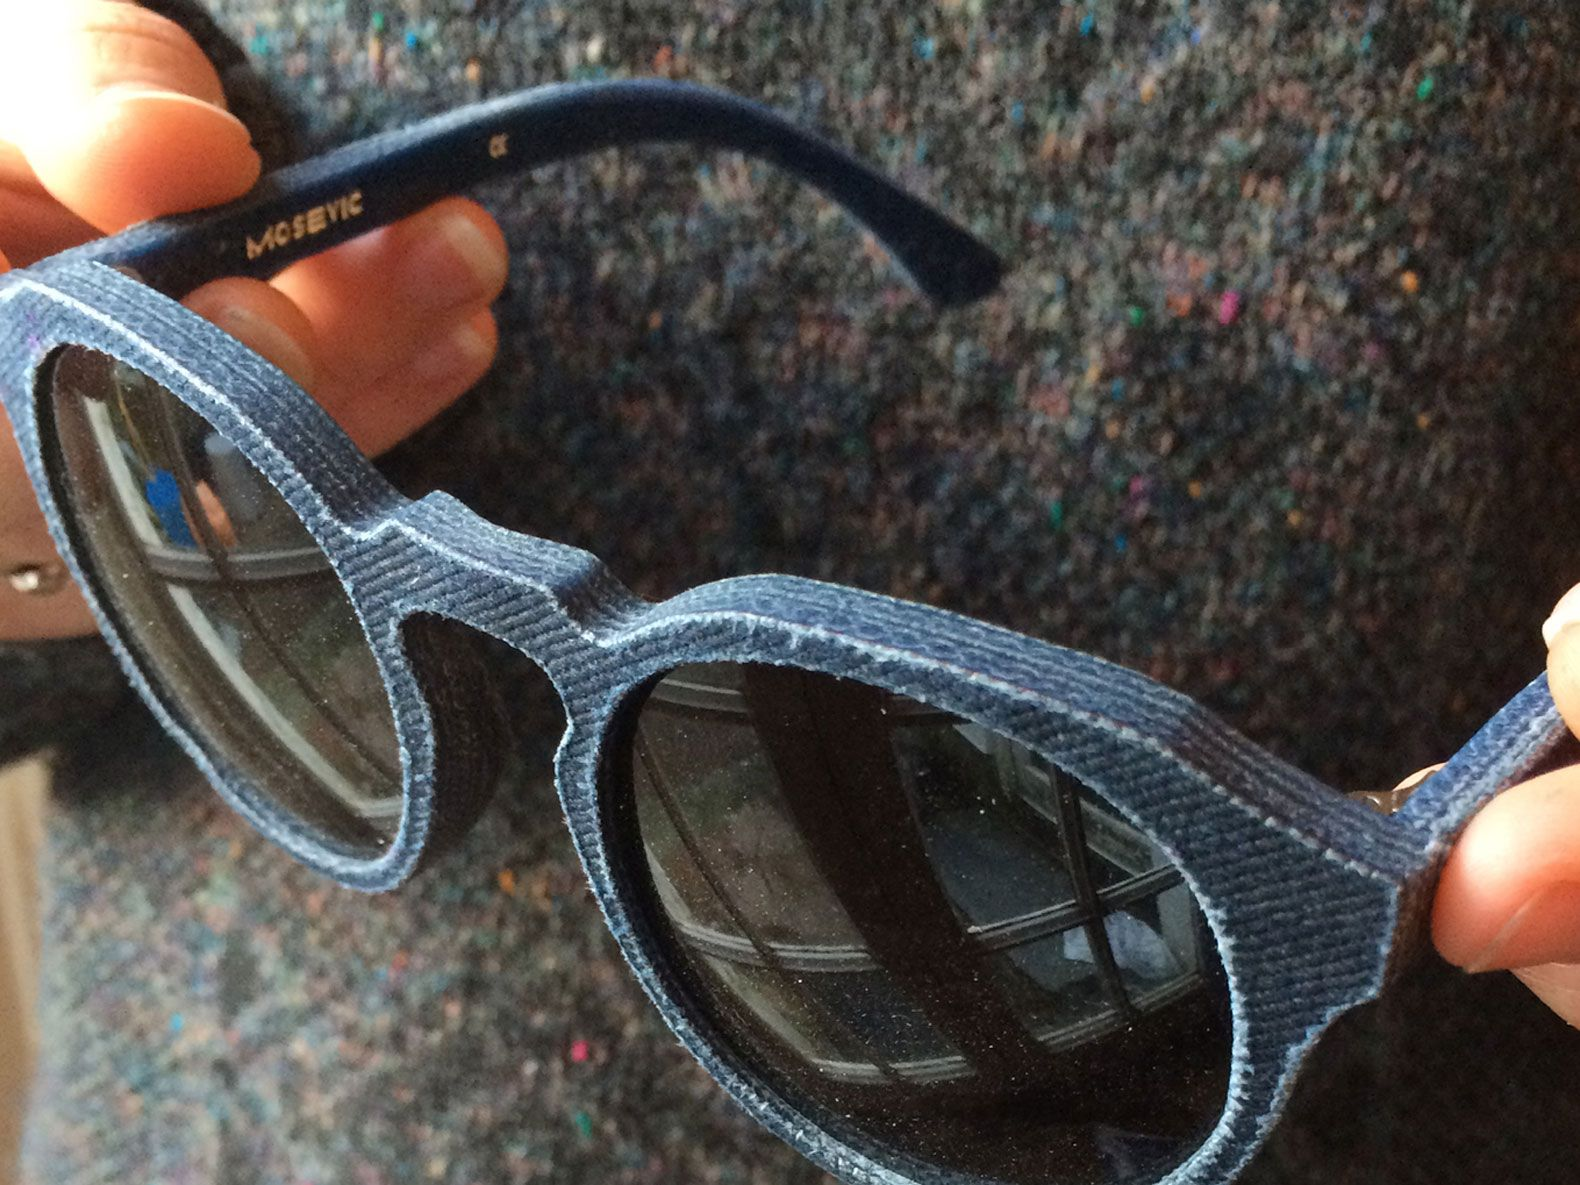 These sunglasses are made almost entirely from recycled denim jeans.